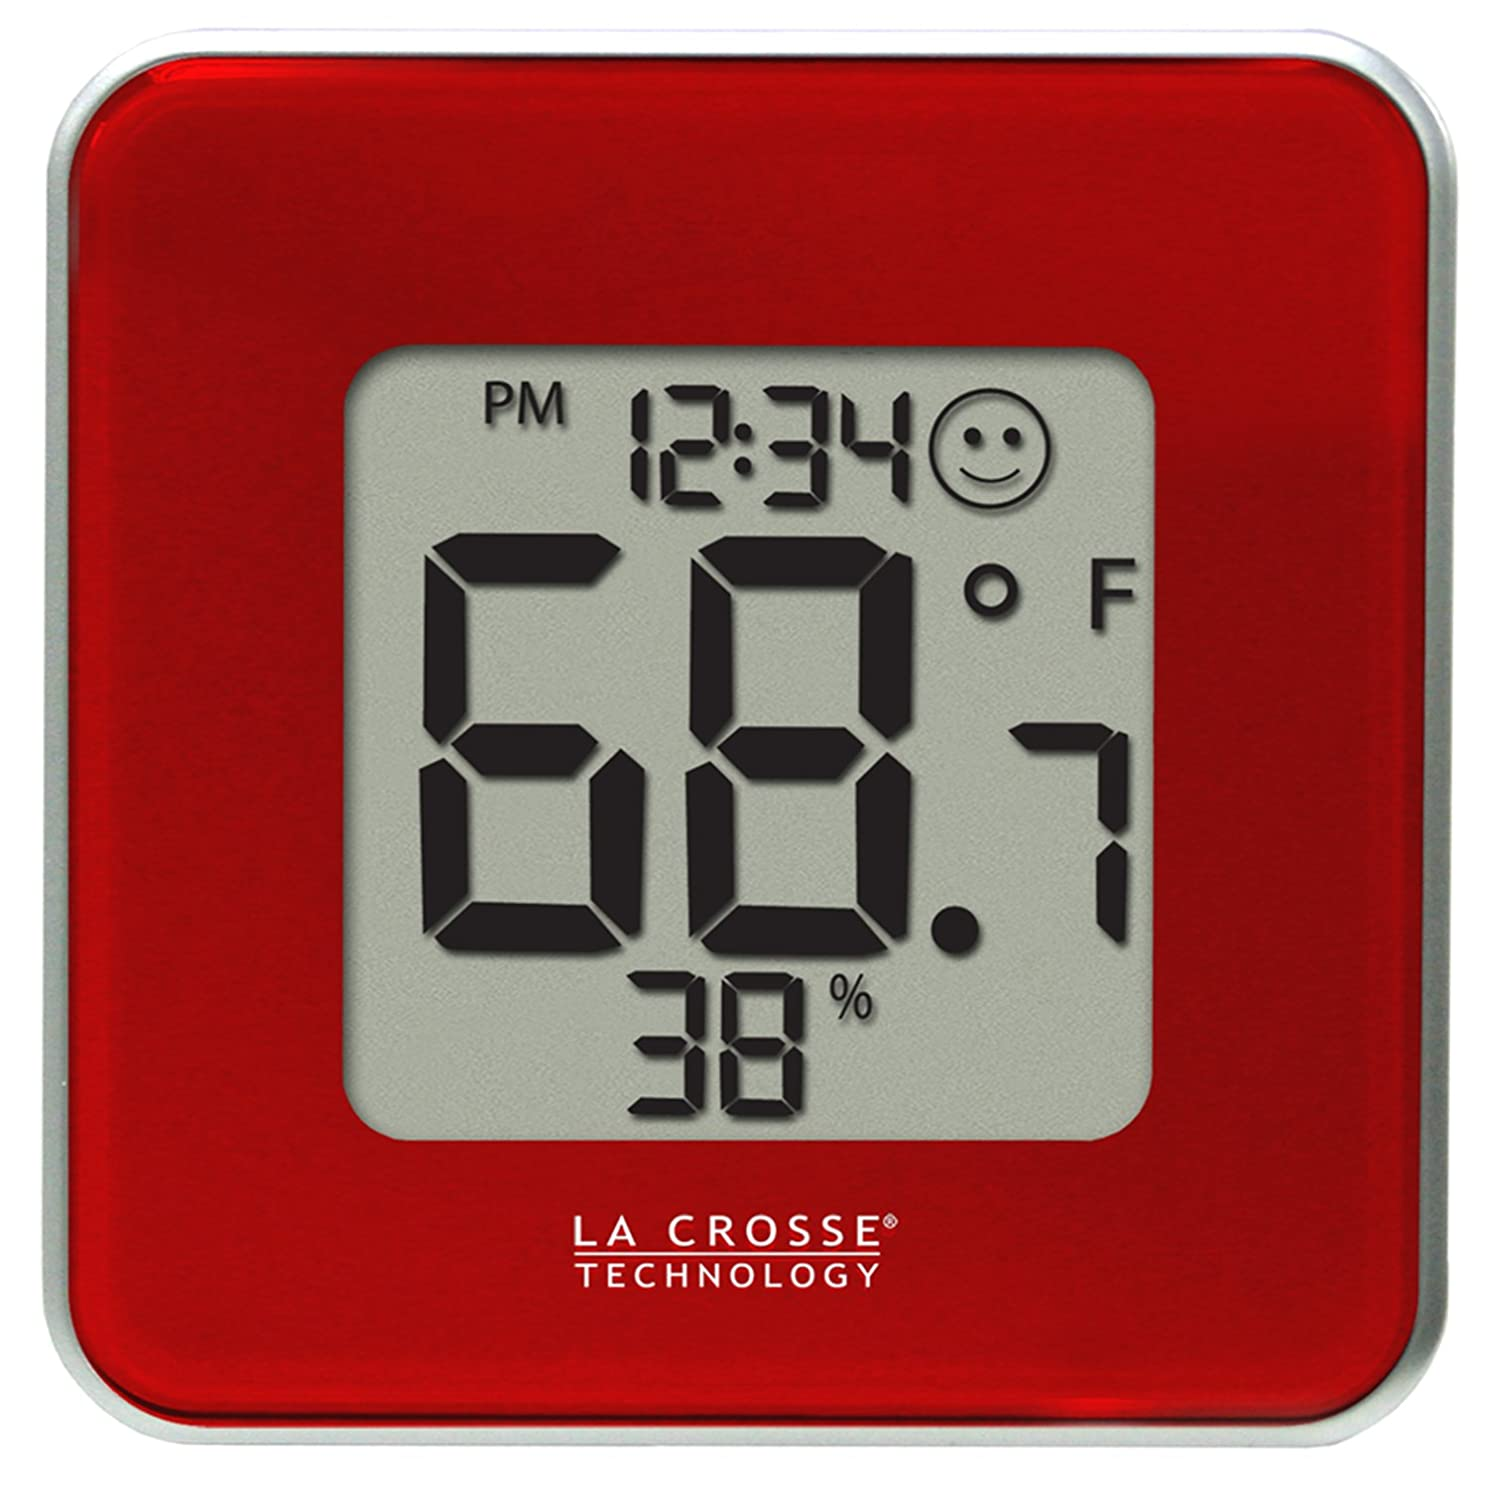 La Crosse Technology 302-604R Indoor Temperature and Humidity Station, Red 302-604R-TBP